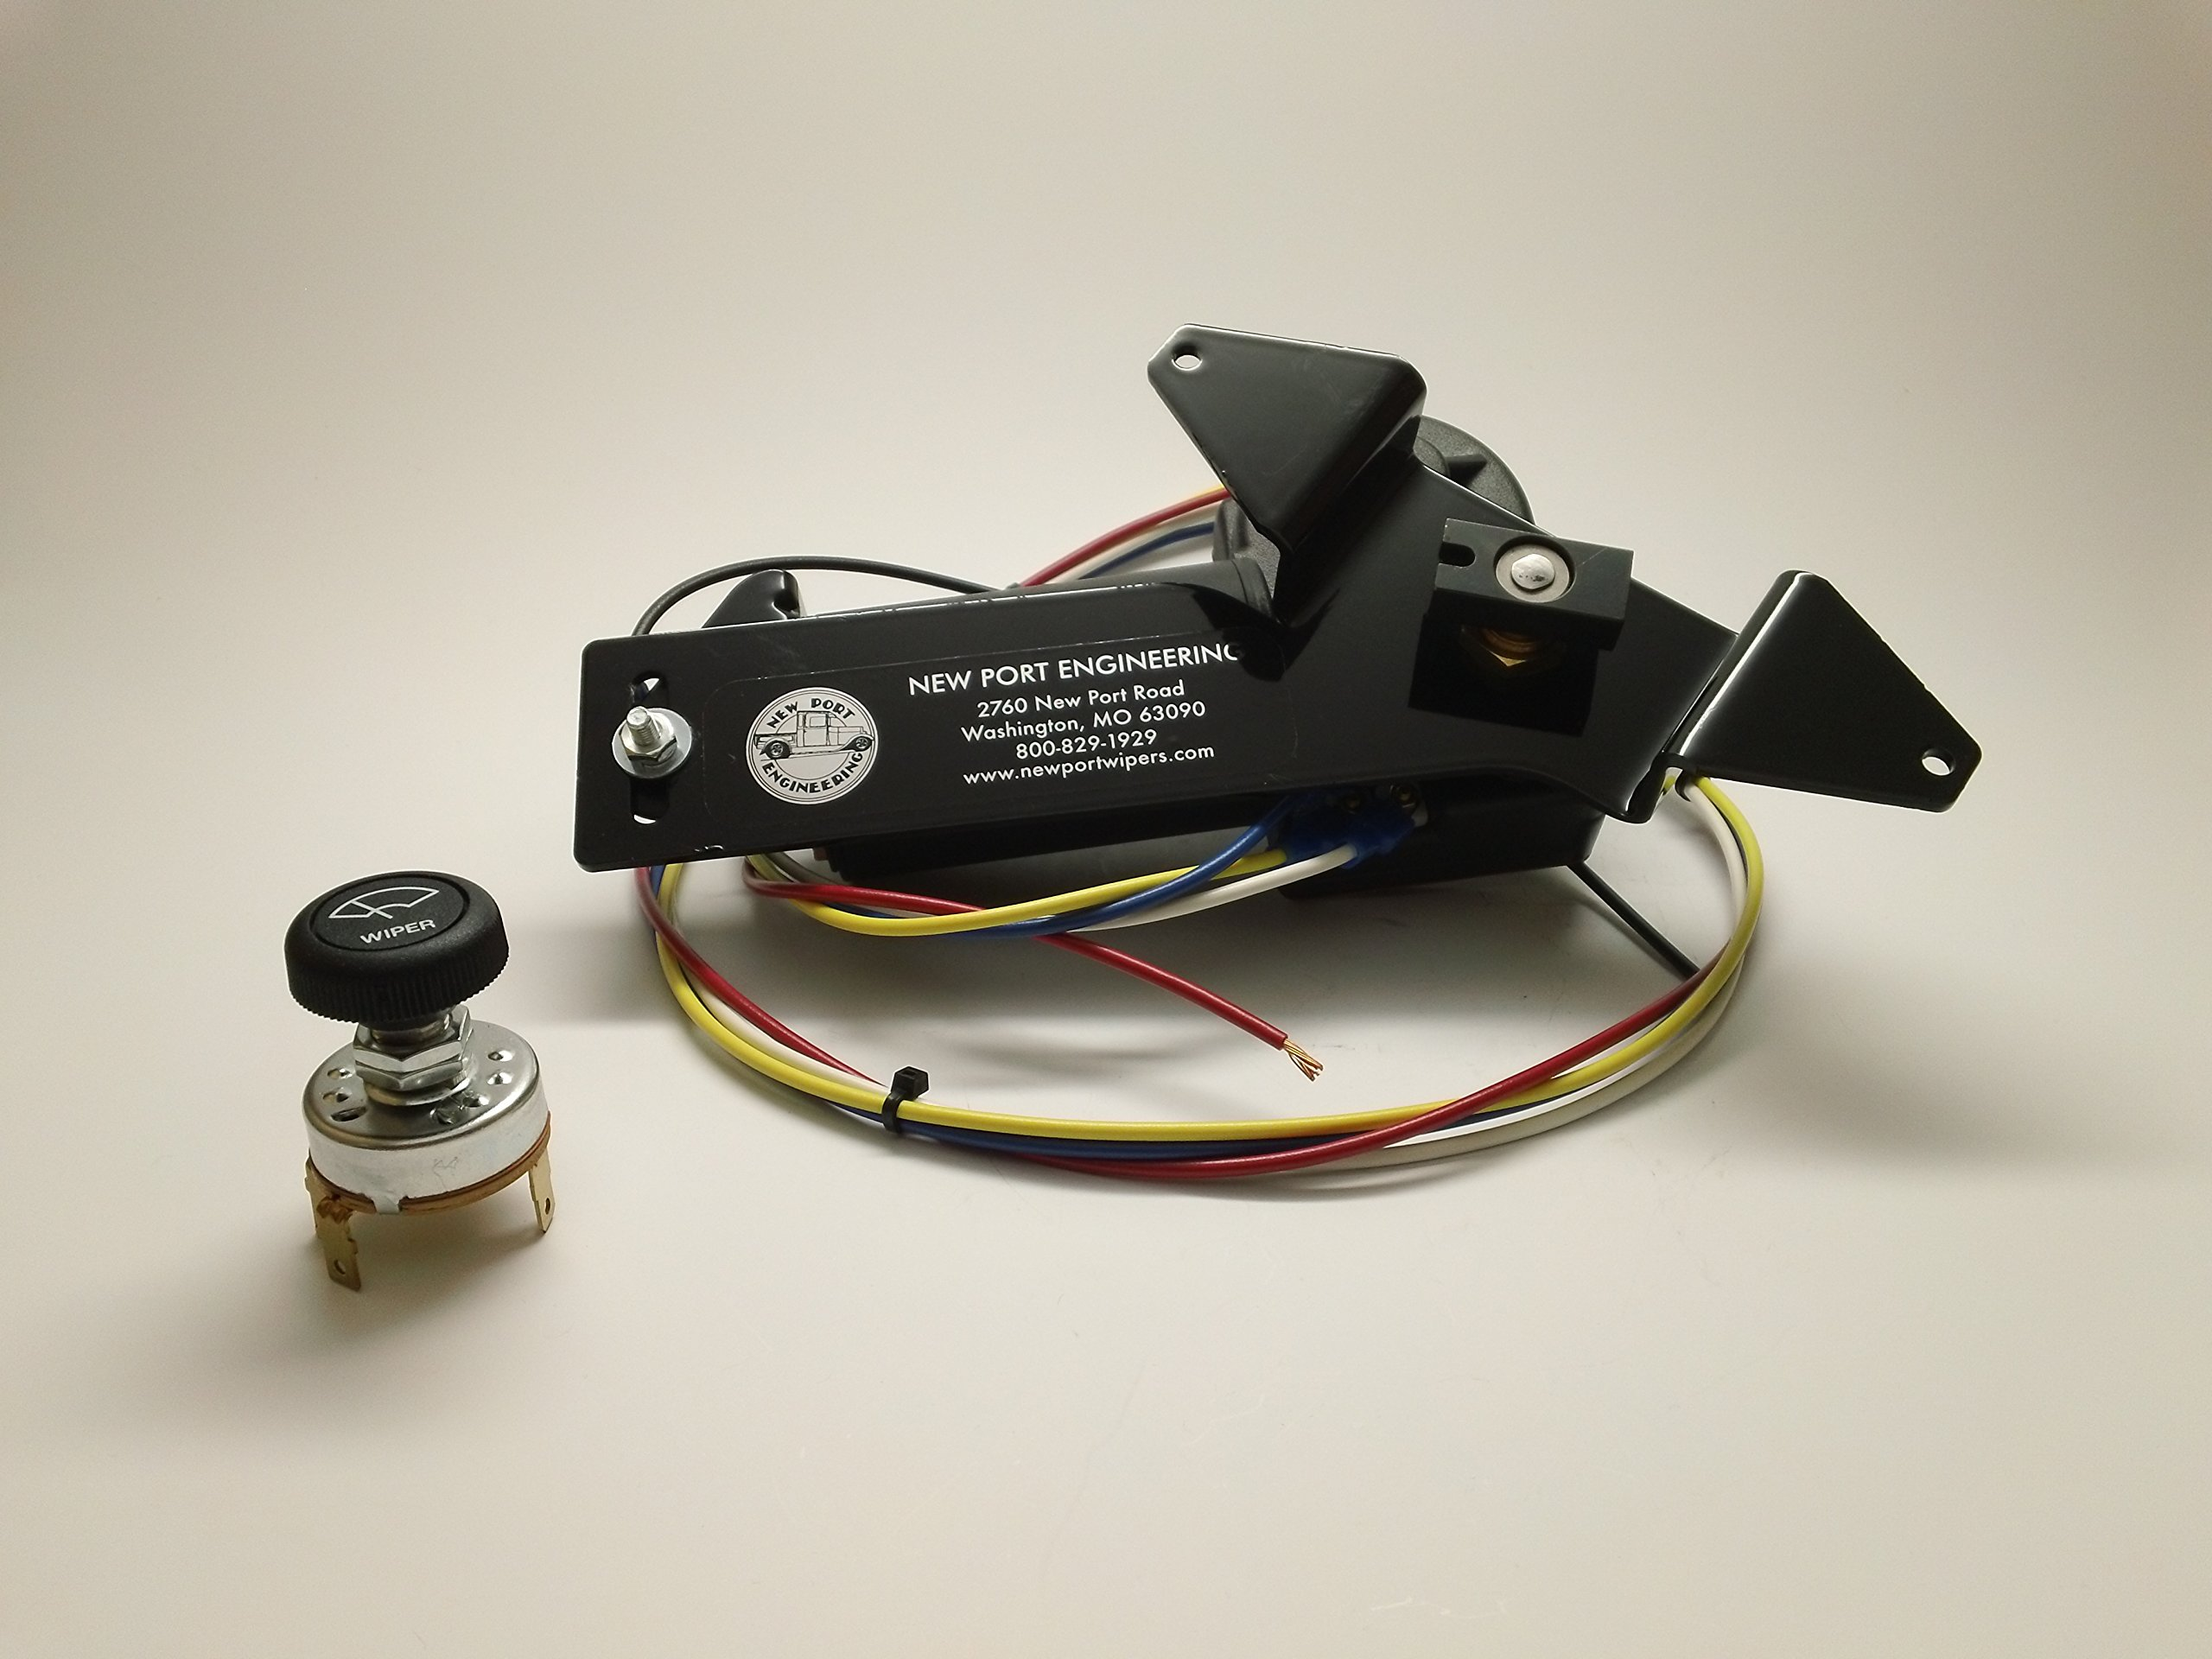 Chevy Car Wiper Motor 1953 1954 & 1957 - NEW PORT ENGINEERING NE5354/57CP by NEW PORT ENGINEERING